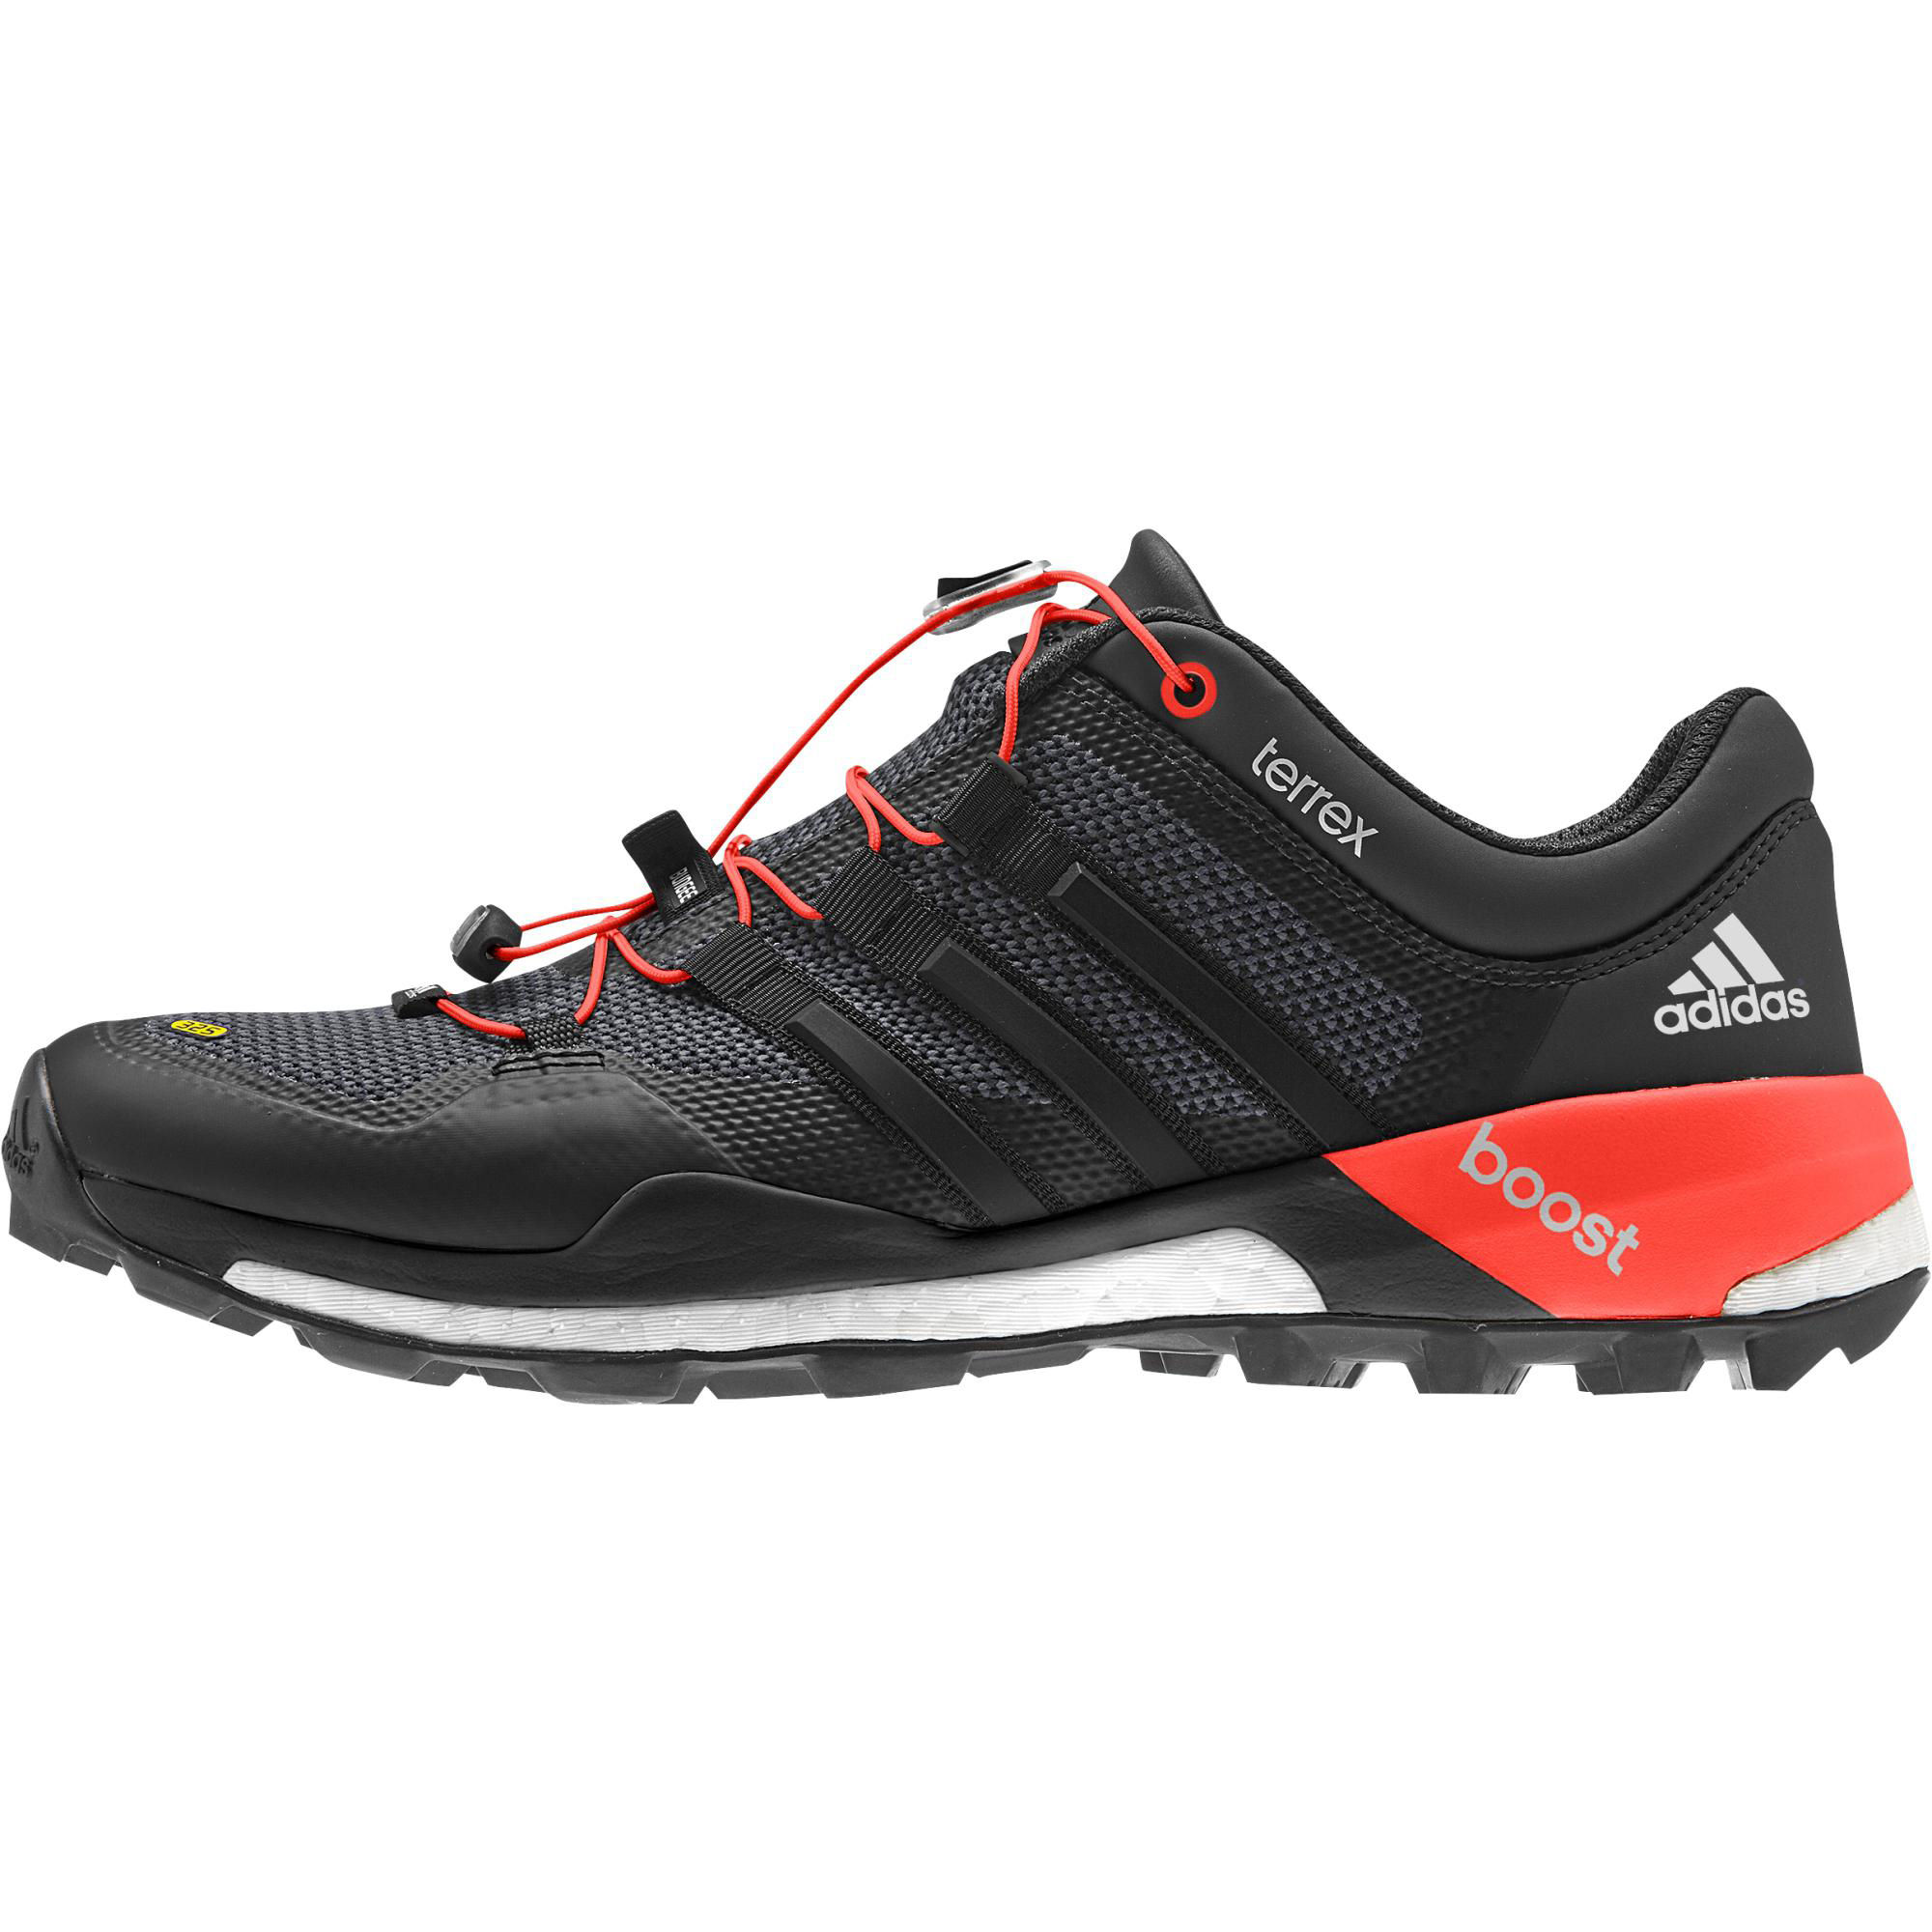 wiggle adidas terrex boost shoes aw15 offroad